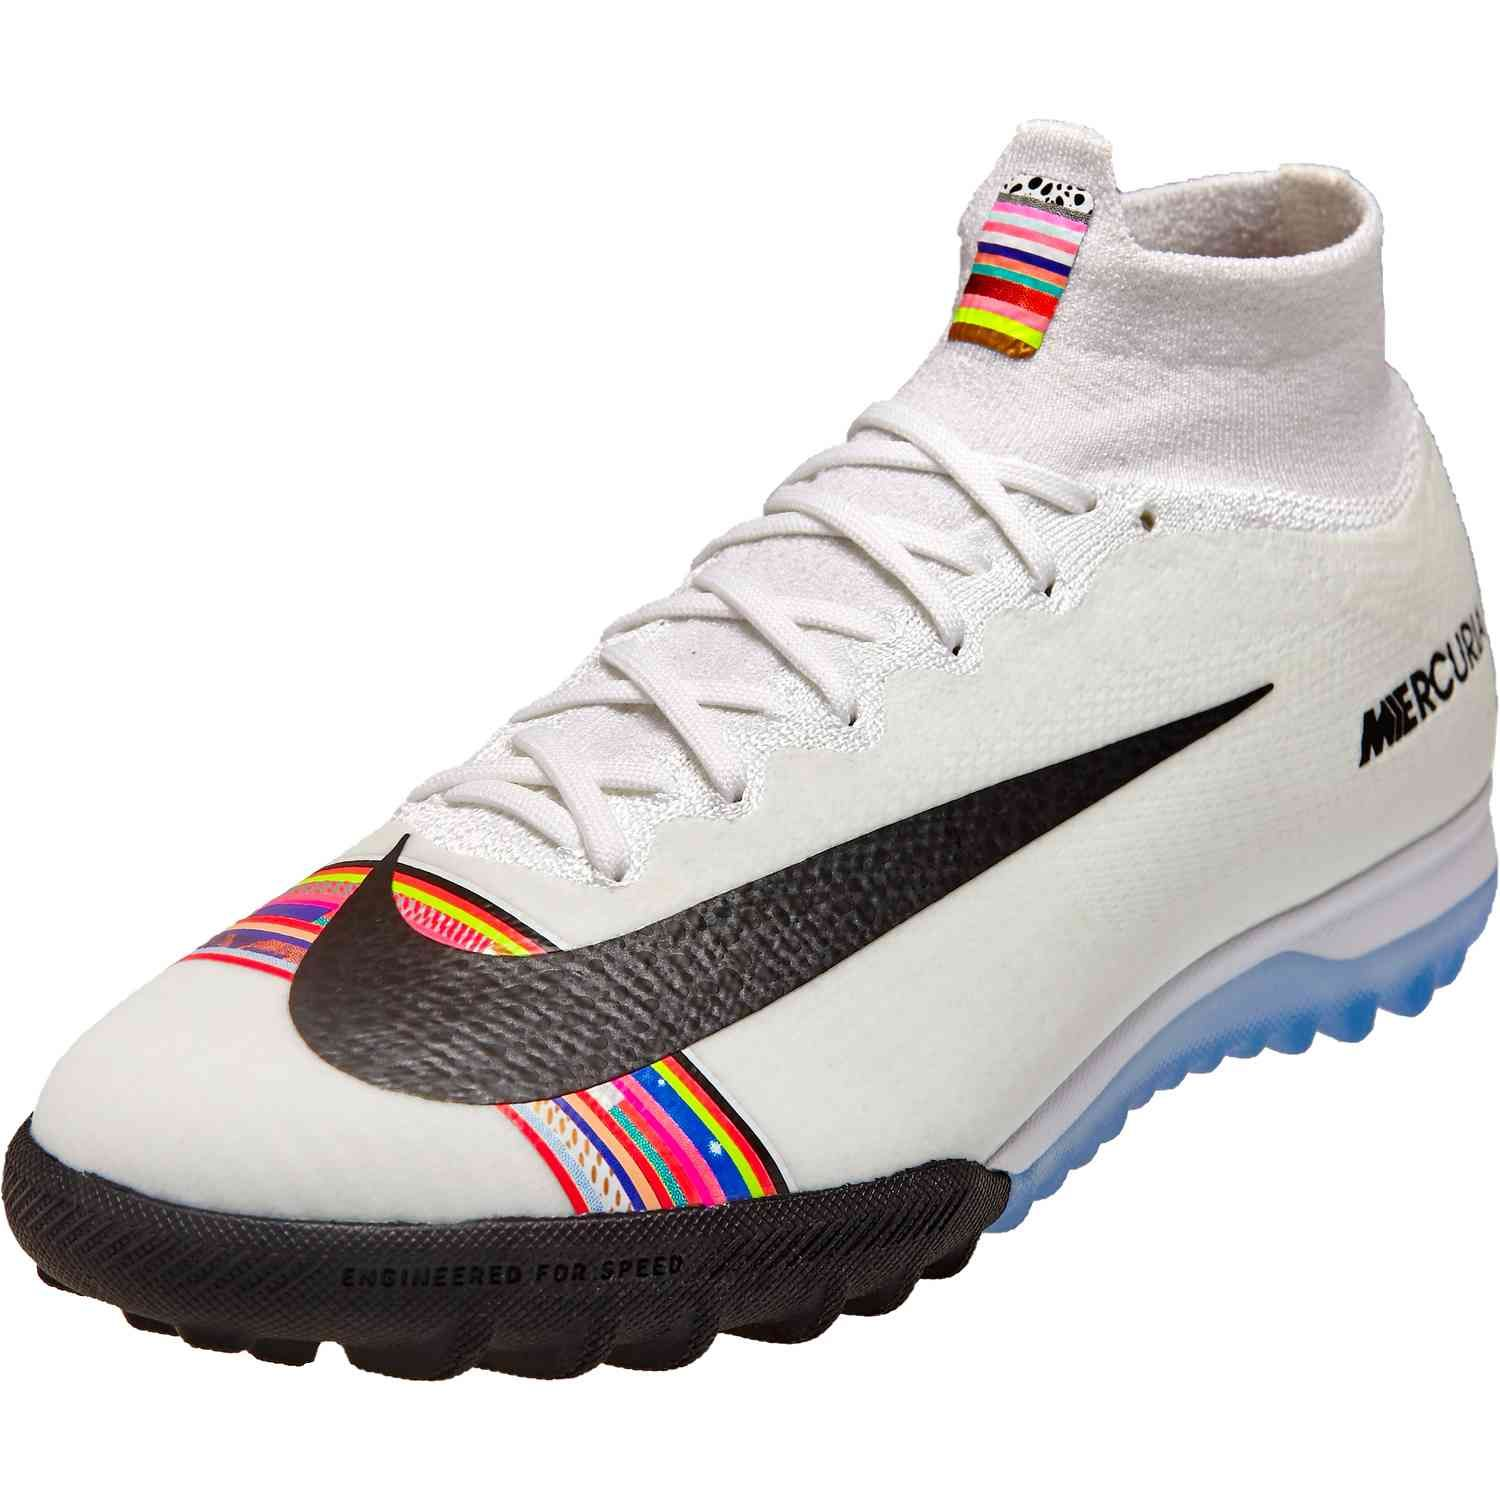 Nike Mercurial Superflyx 6 Elite Tf Level Up Soccerpro Superfly Soccer Cleats Soccer Shoes Nike